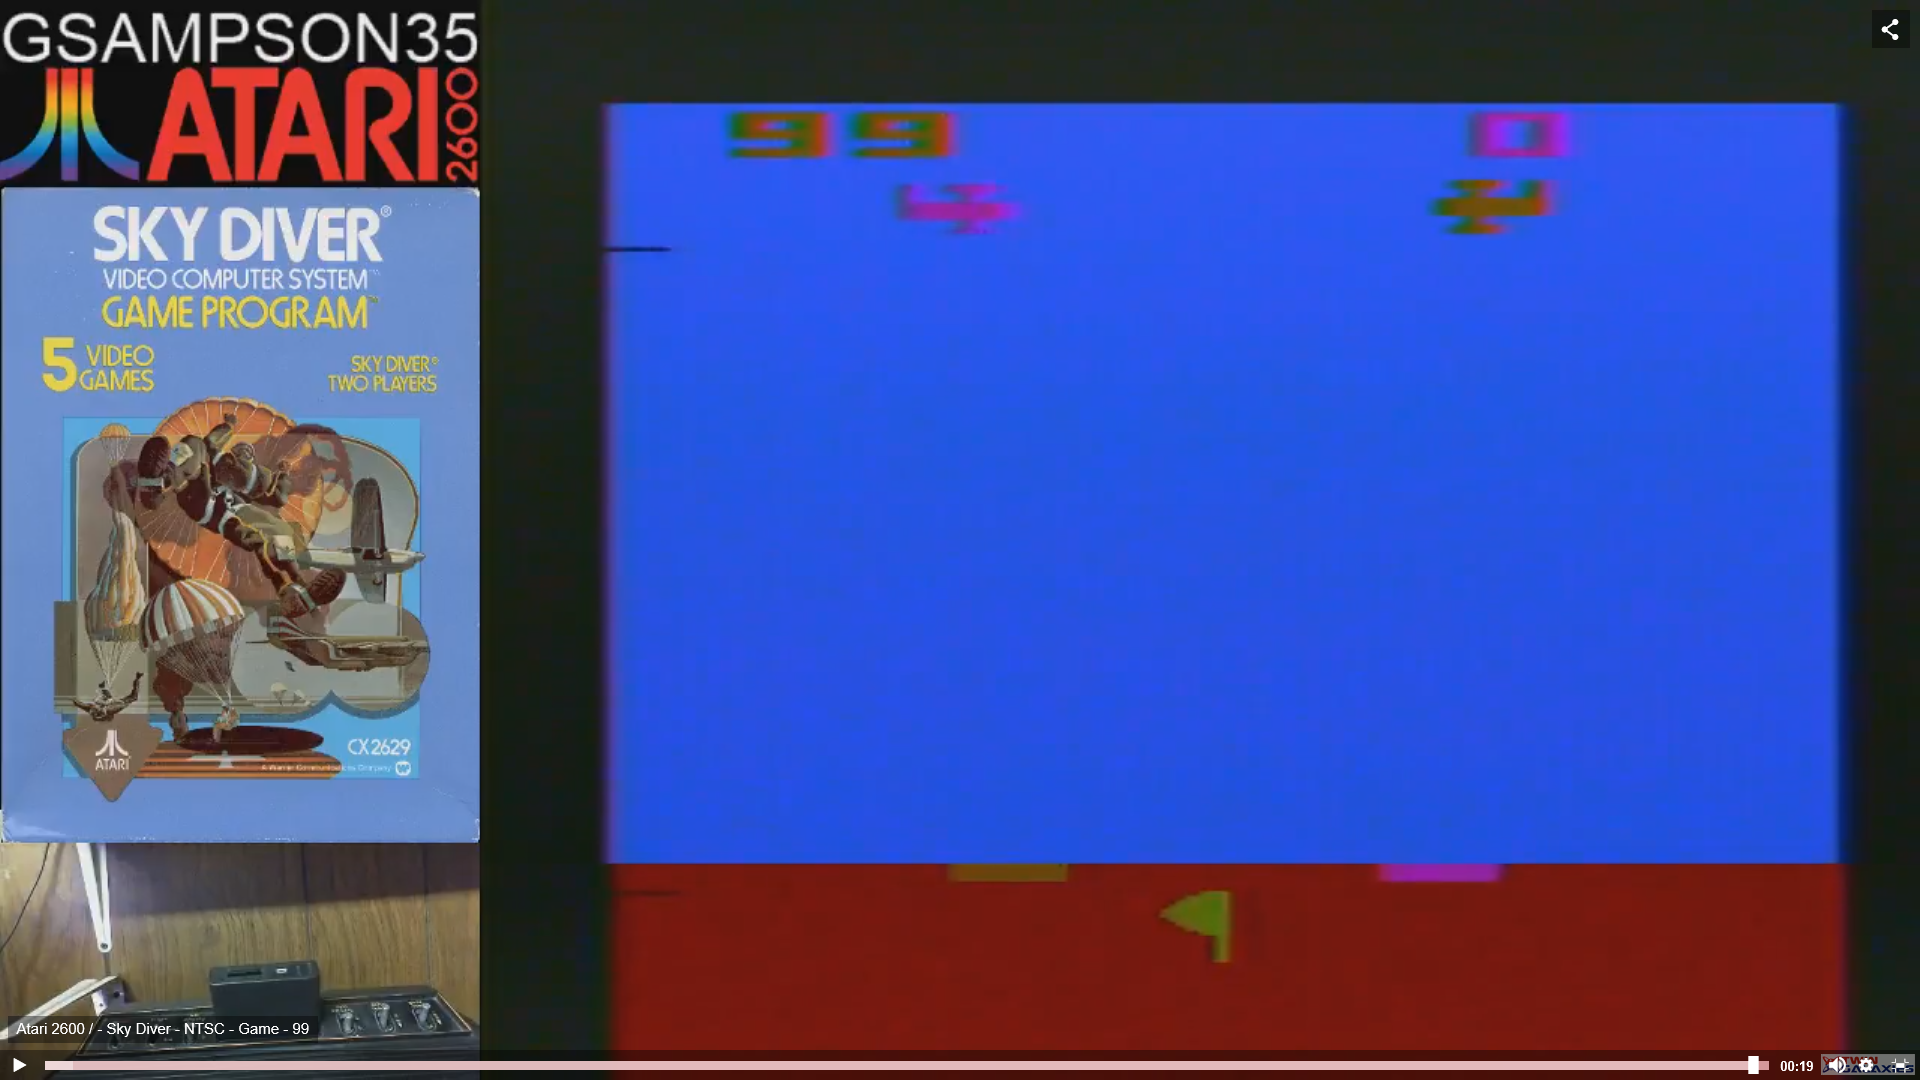 gsampson35: Sky Diver (Atari 2600 Novice/B) 99 points on 2019-02-10 04:24:36